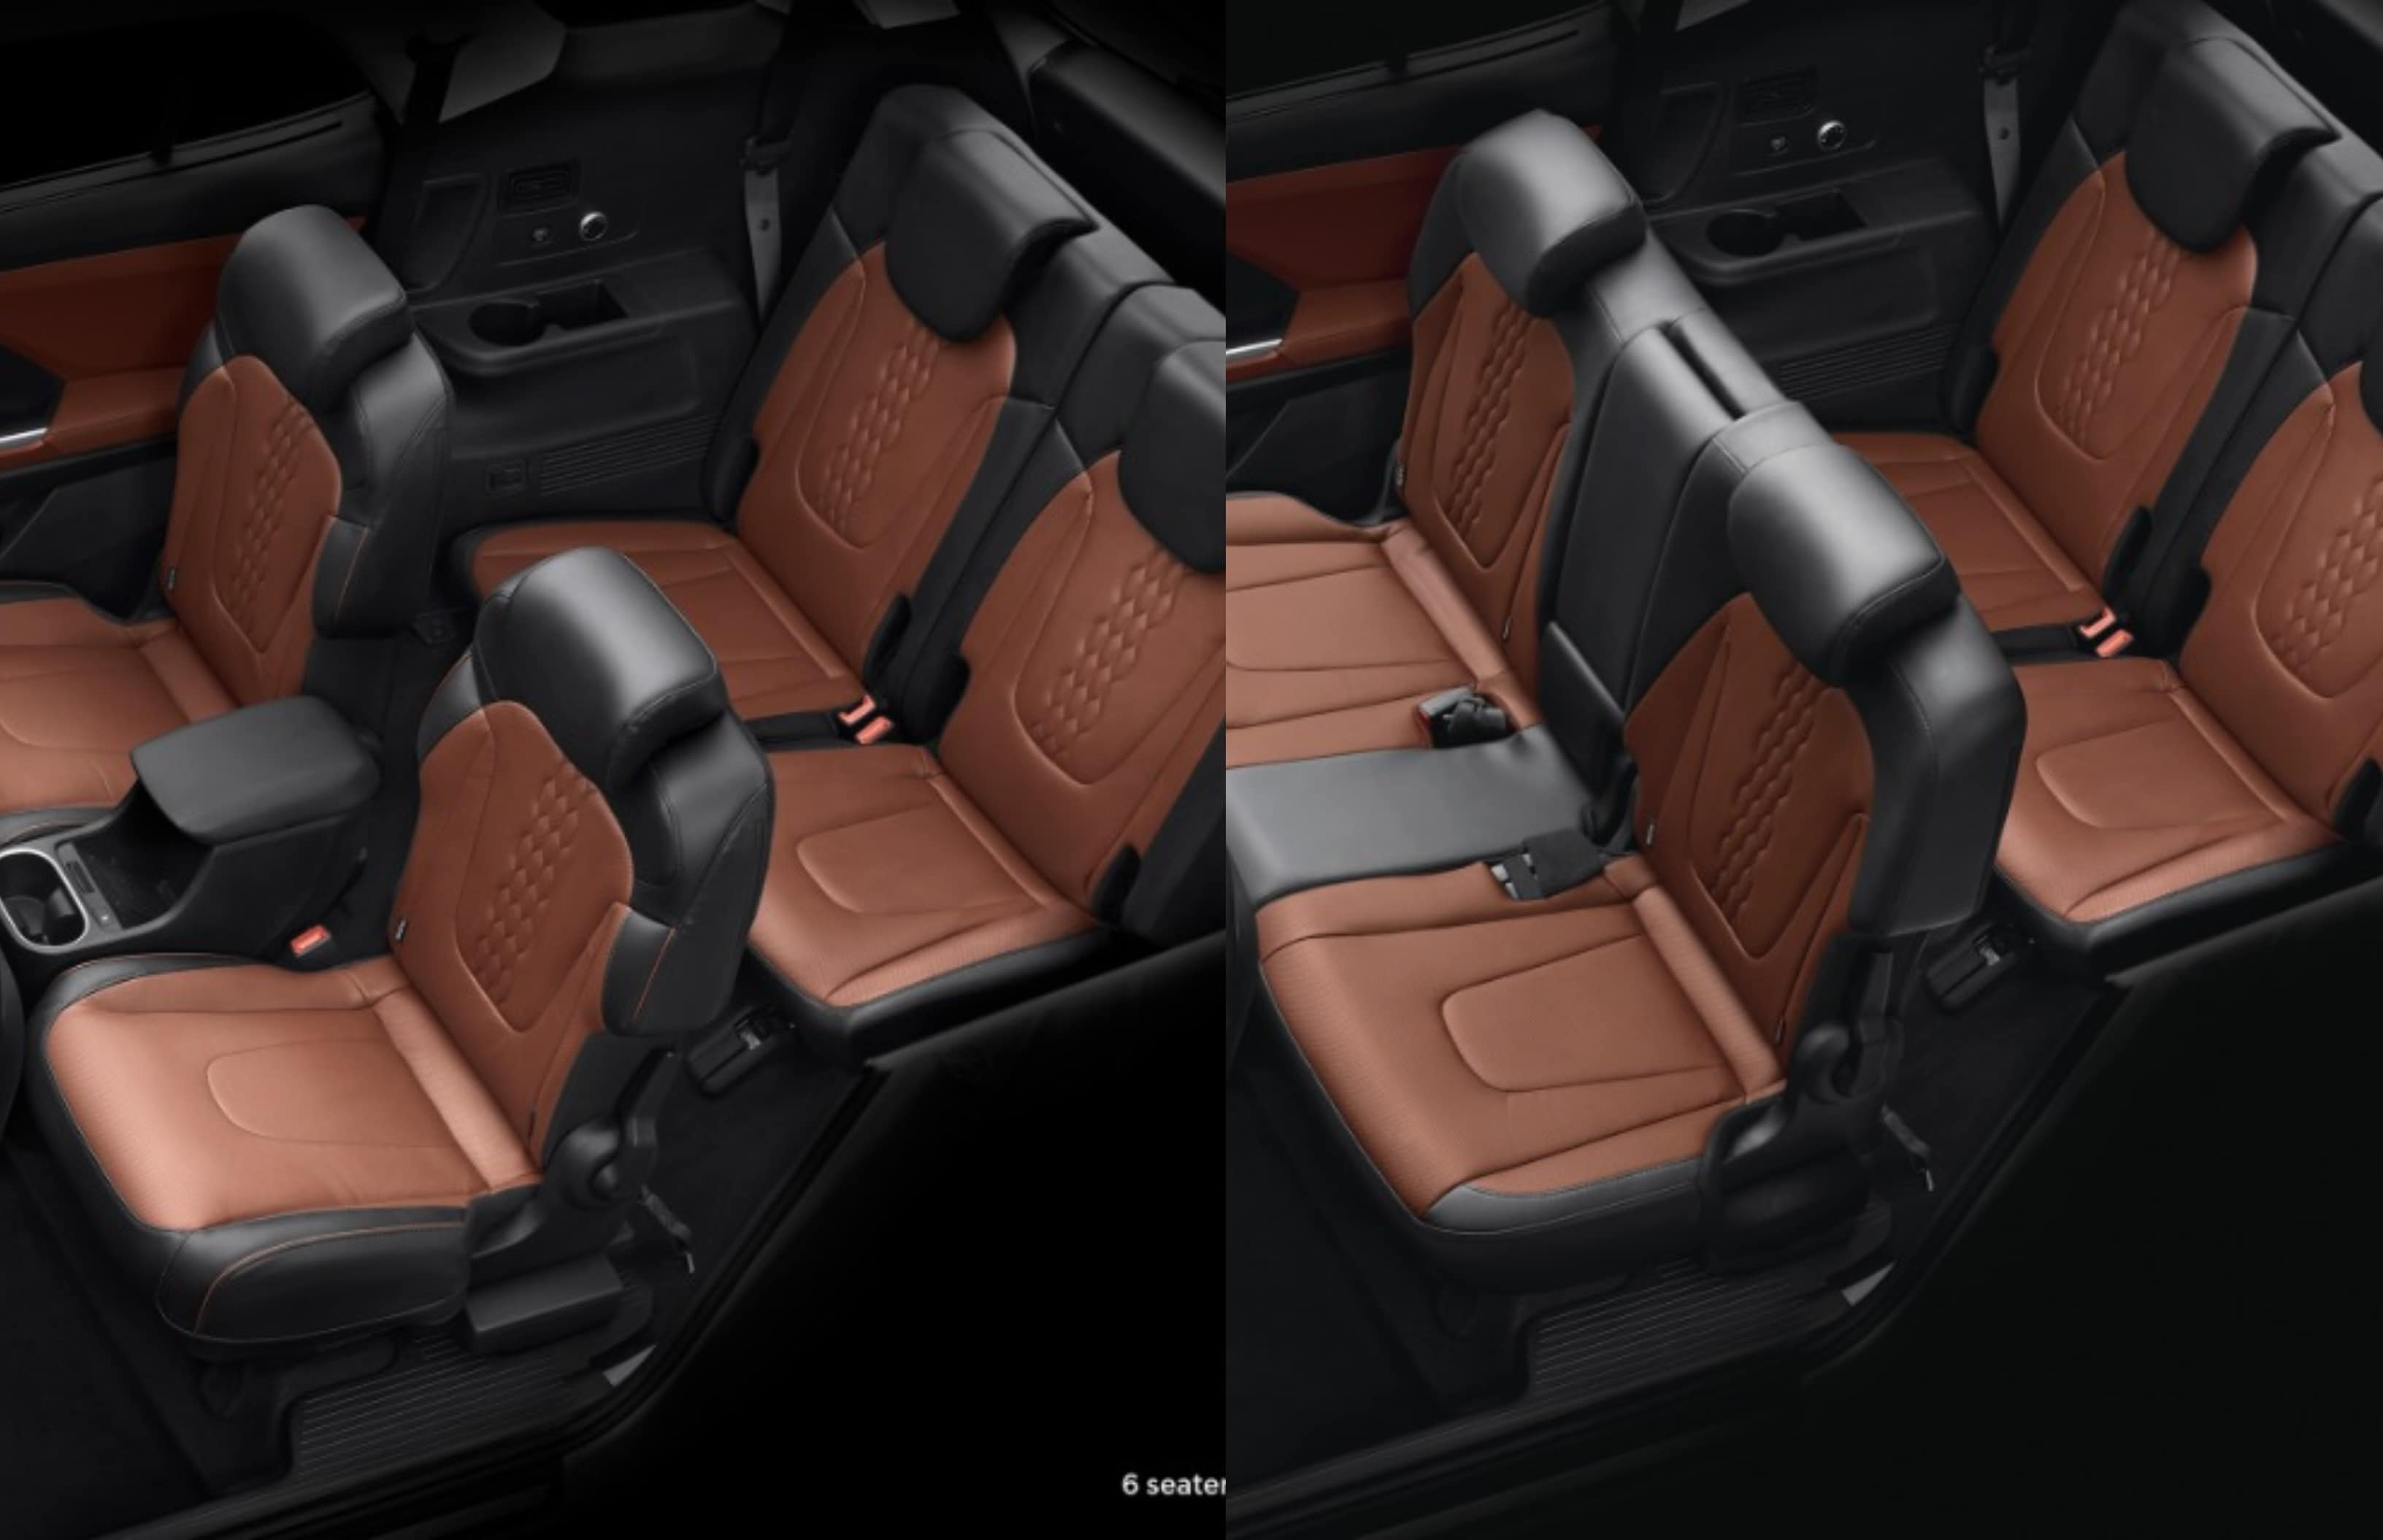 Hyundai Alcazar will be offered in six-seat (L) and seven-seat (R) layouts. In the former, the SUV will get Captain seats in the middle row, complete with dedicated storage space, cupholders and even charging points.